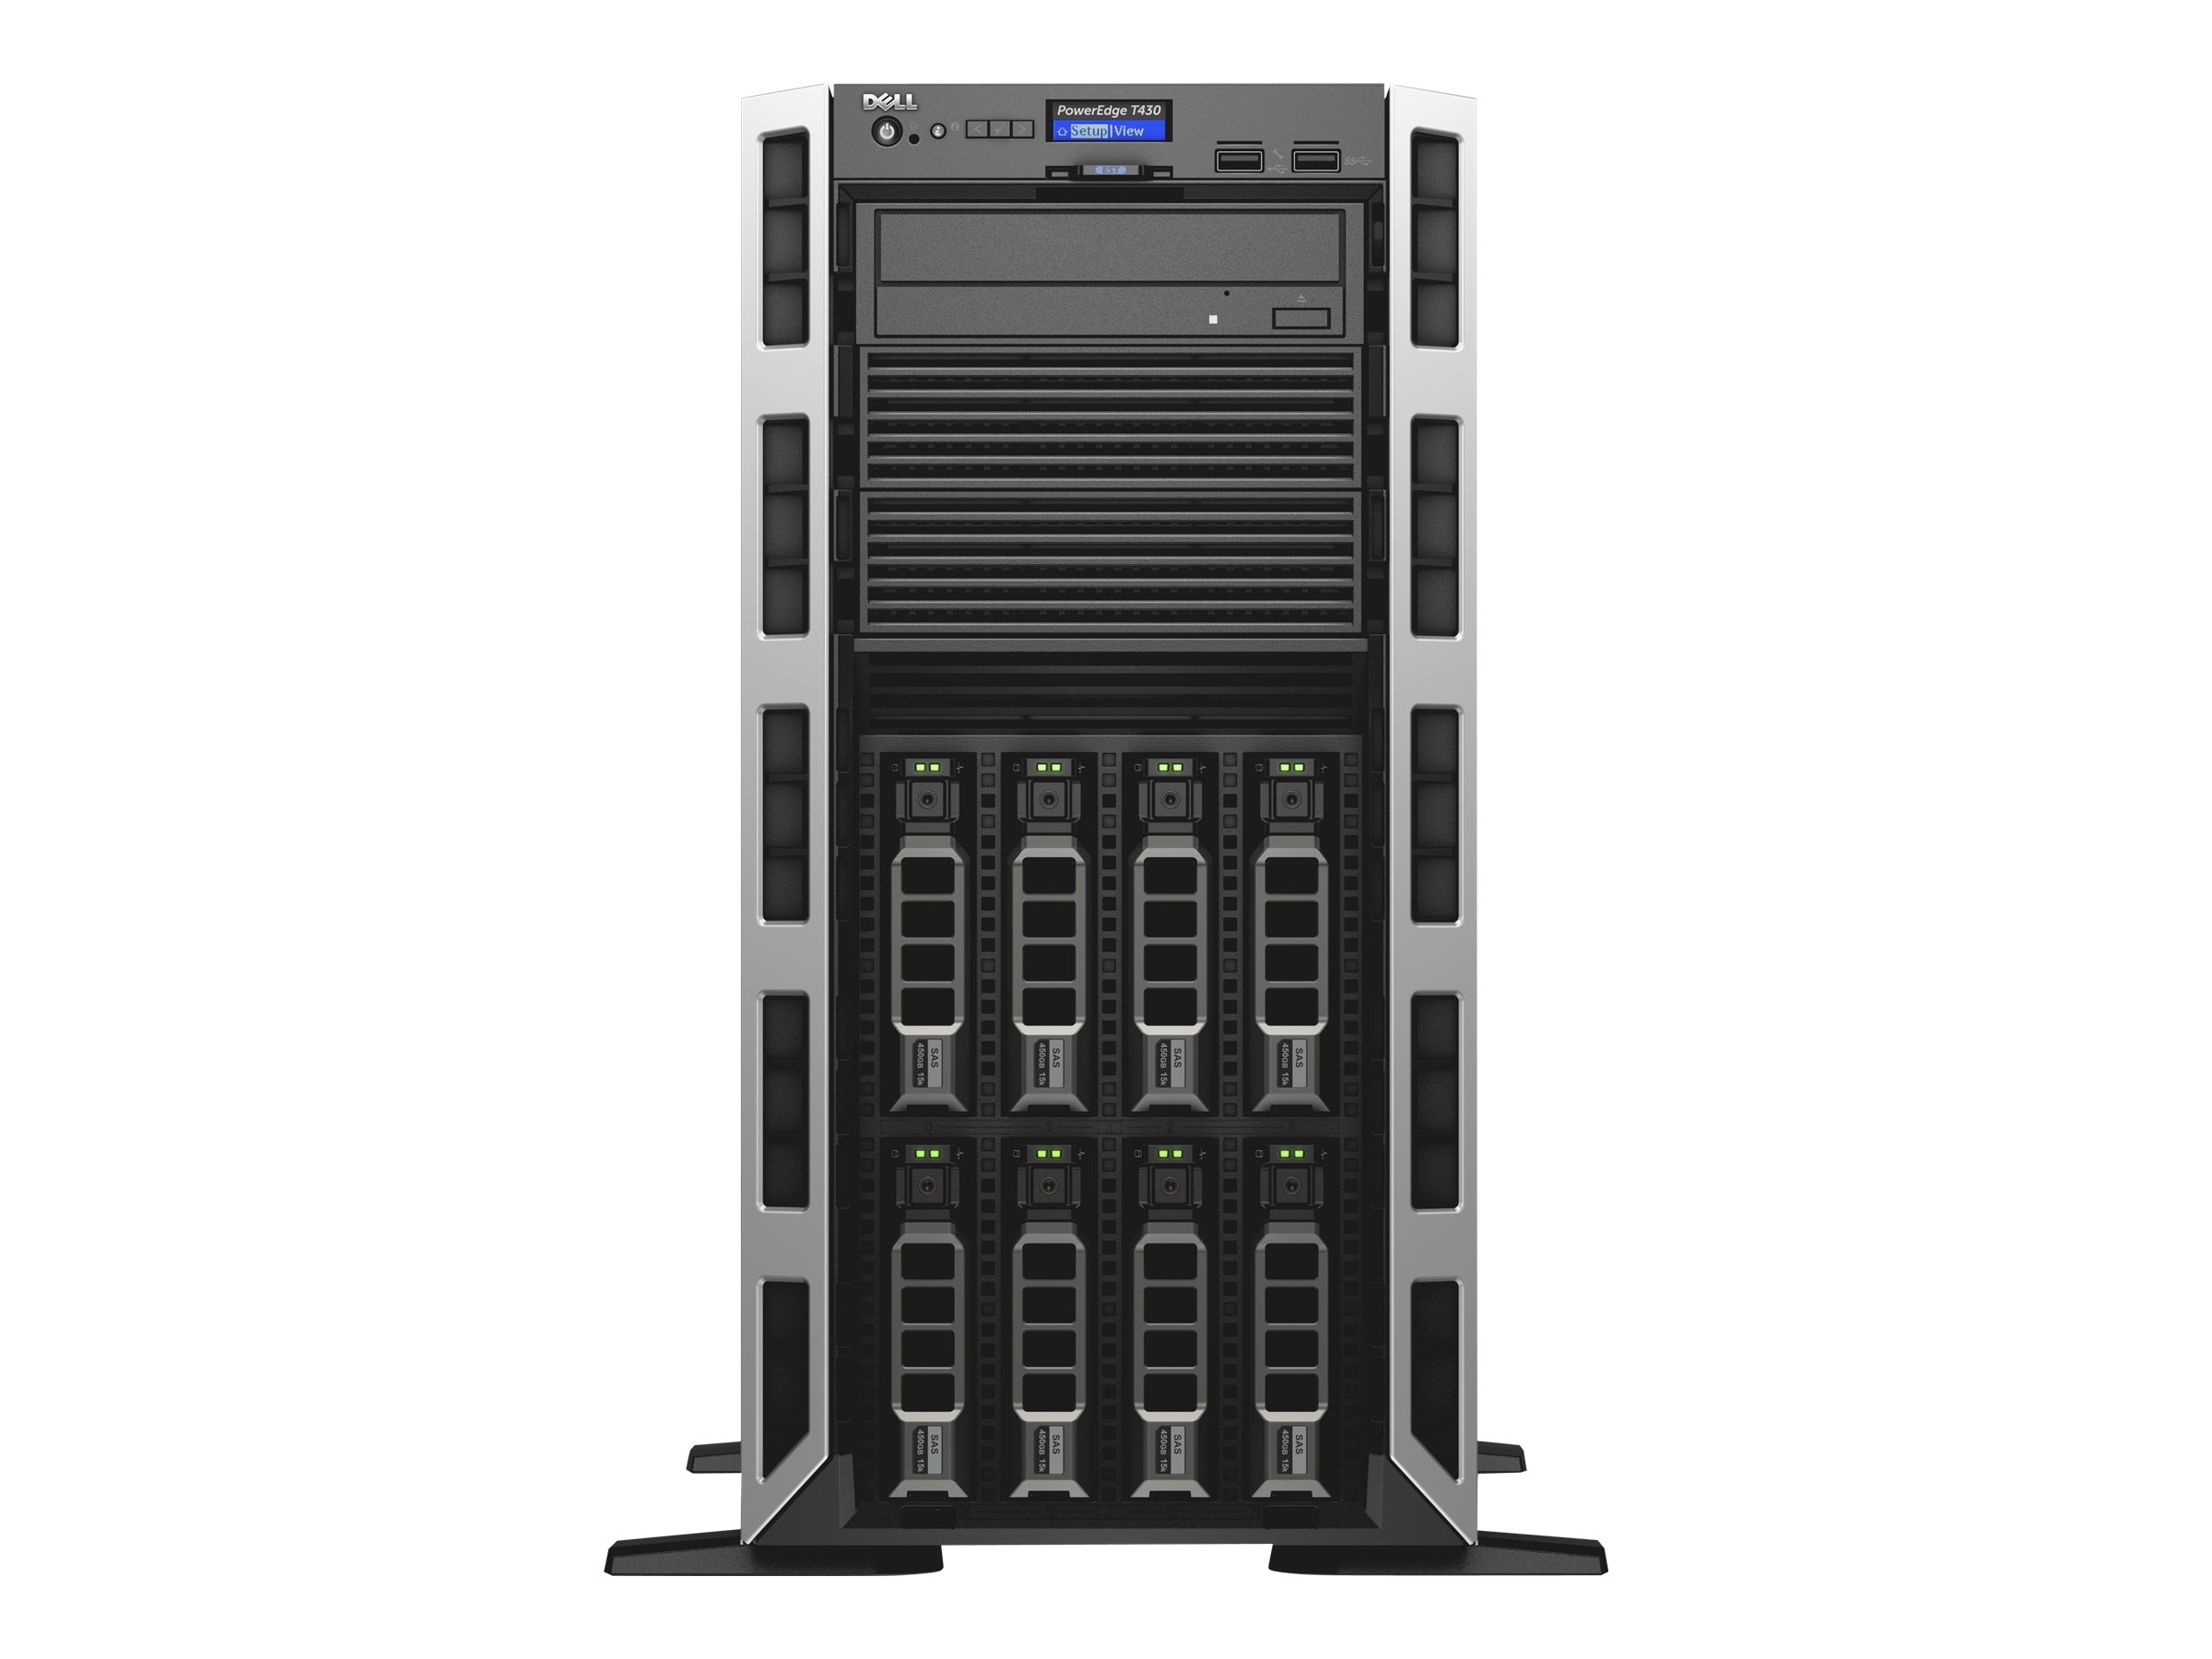 Dell PowerEdge T430 Intel 1 7GHz Xeon